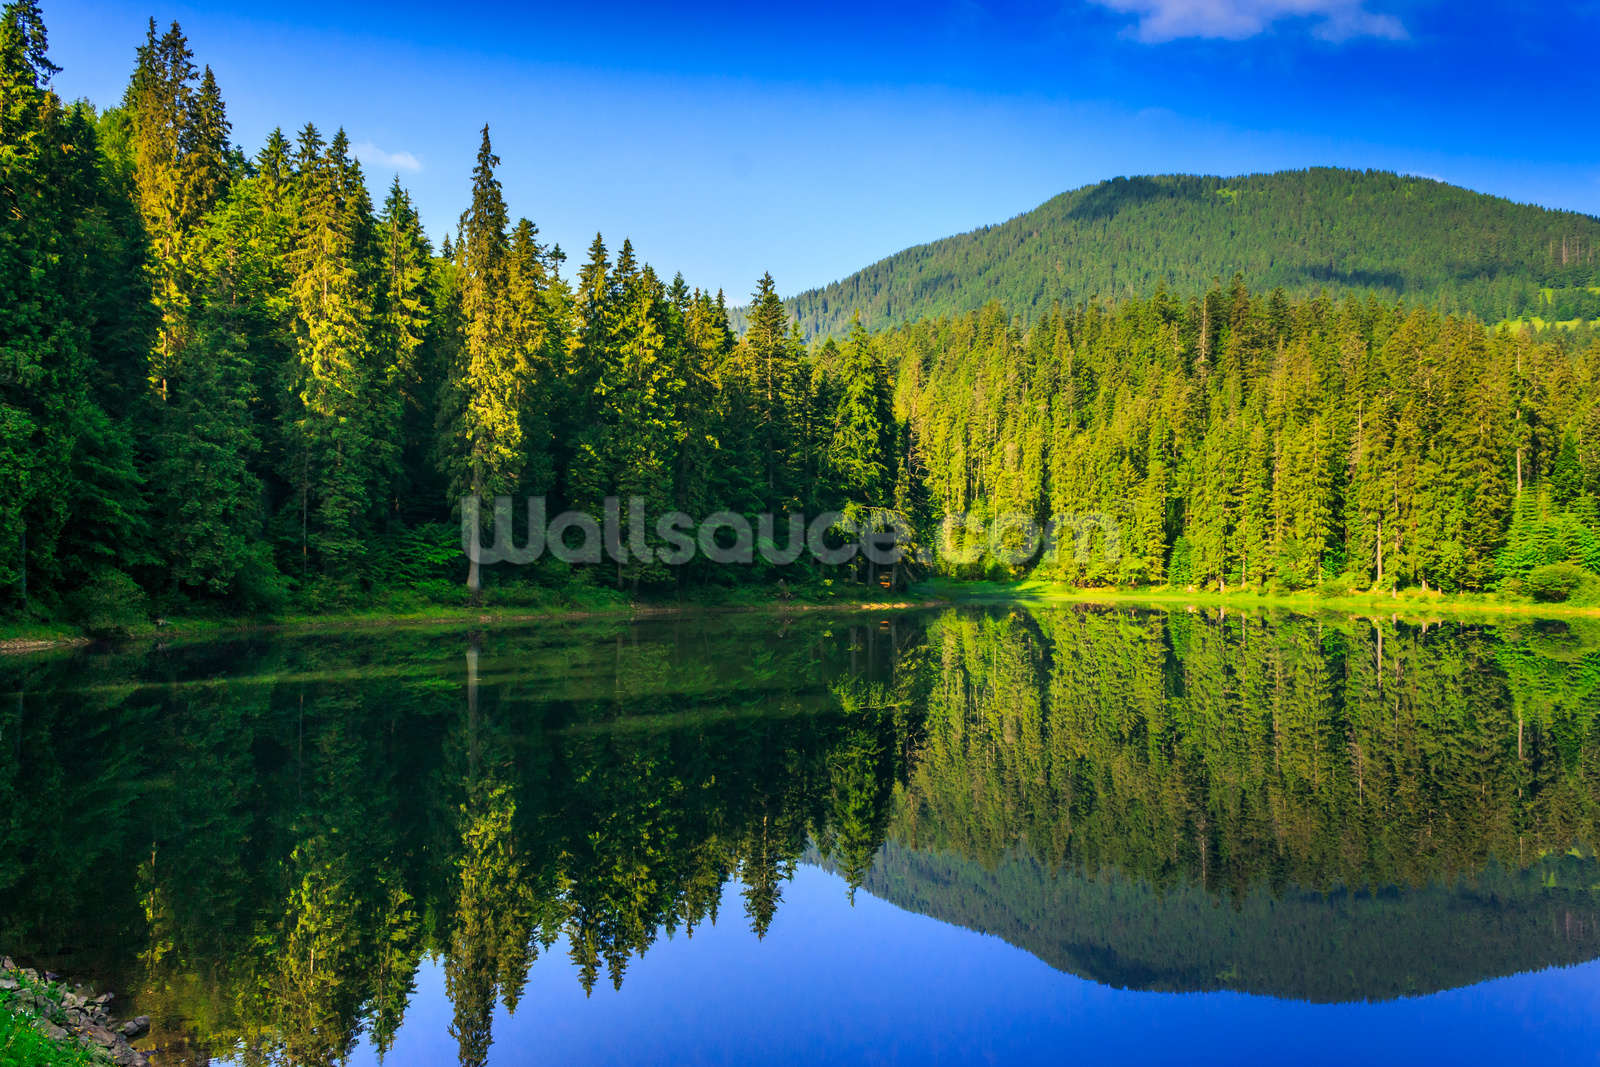 Nature's Green and Blue Wallpaper Wall Mural | Wallsauce USA